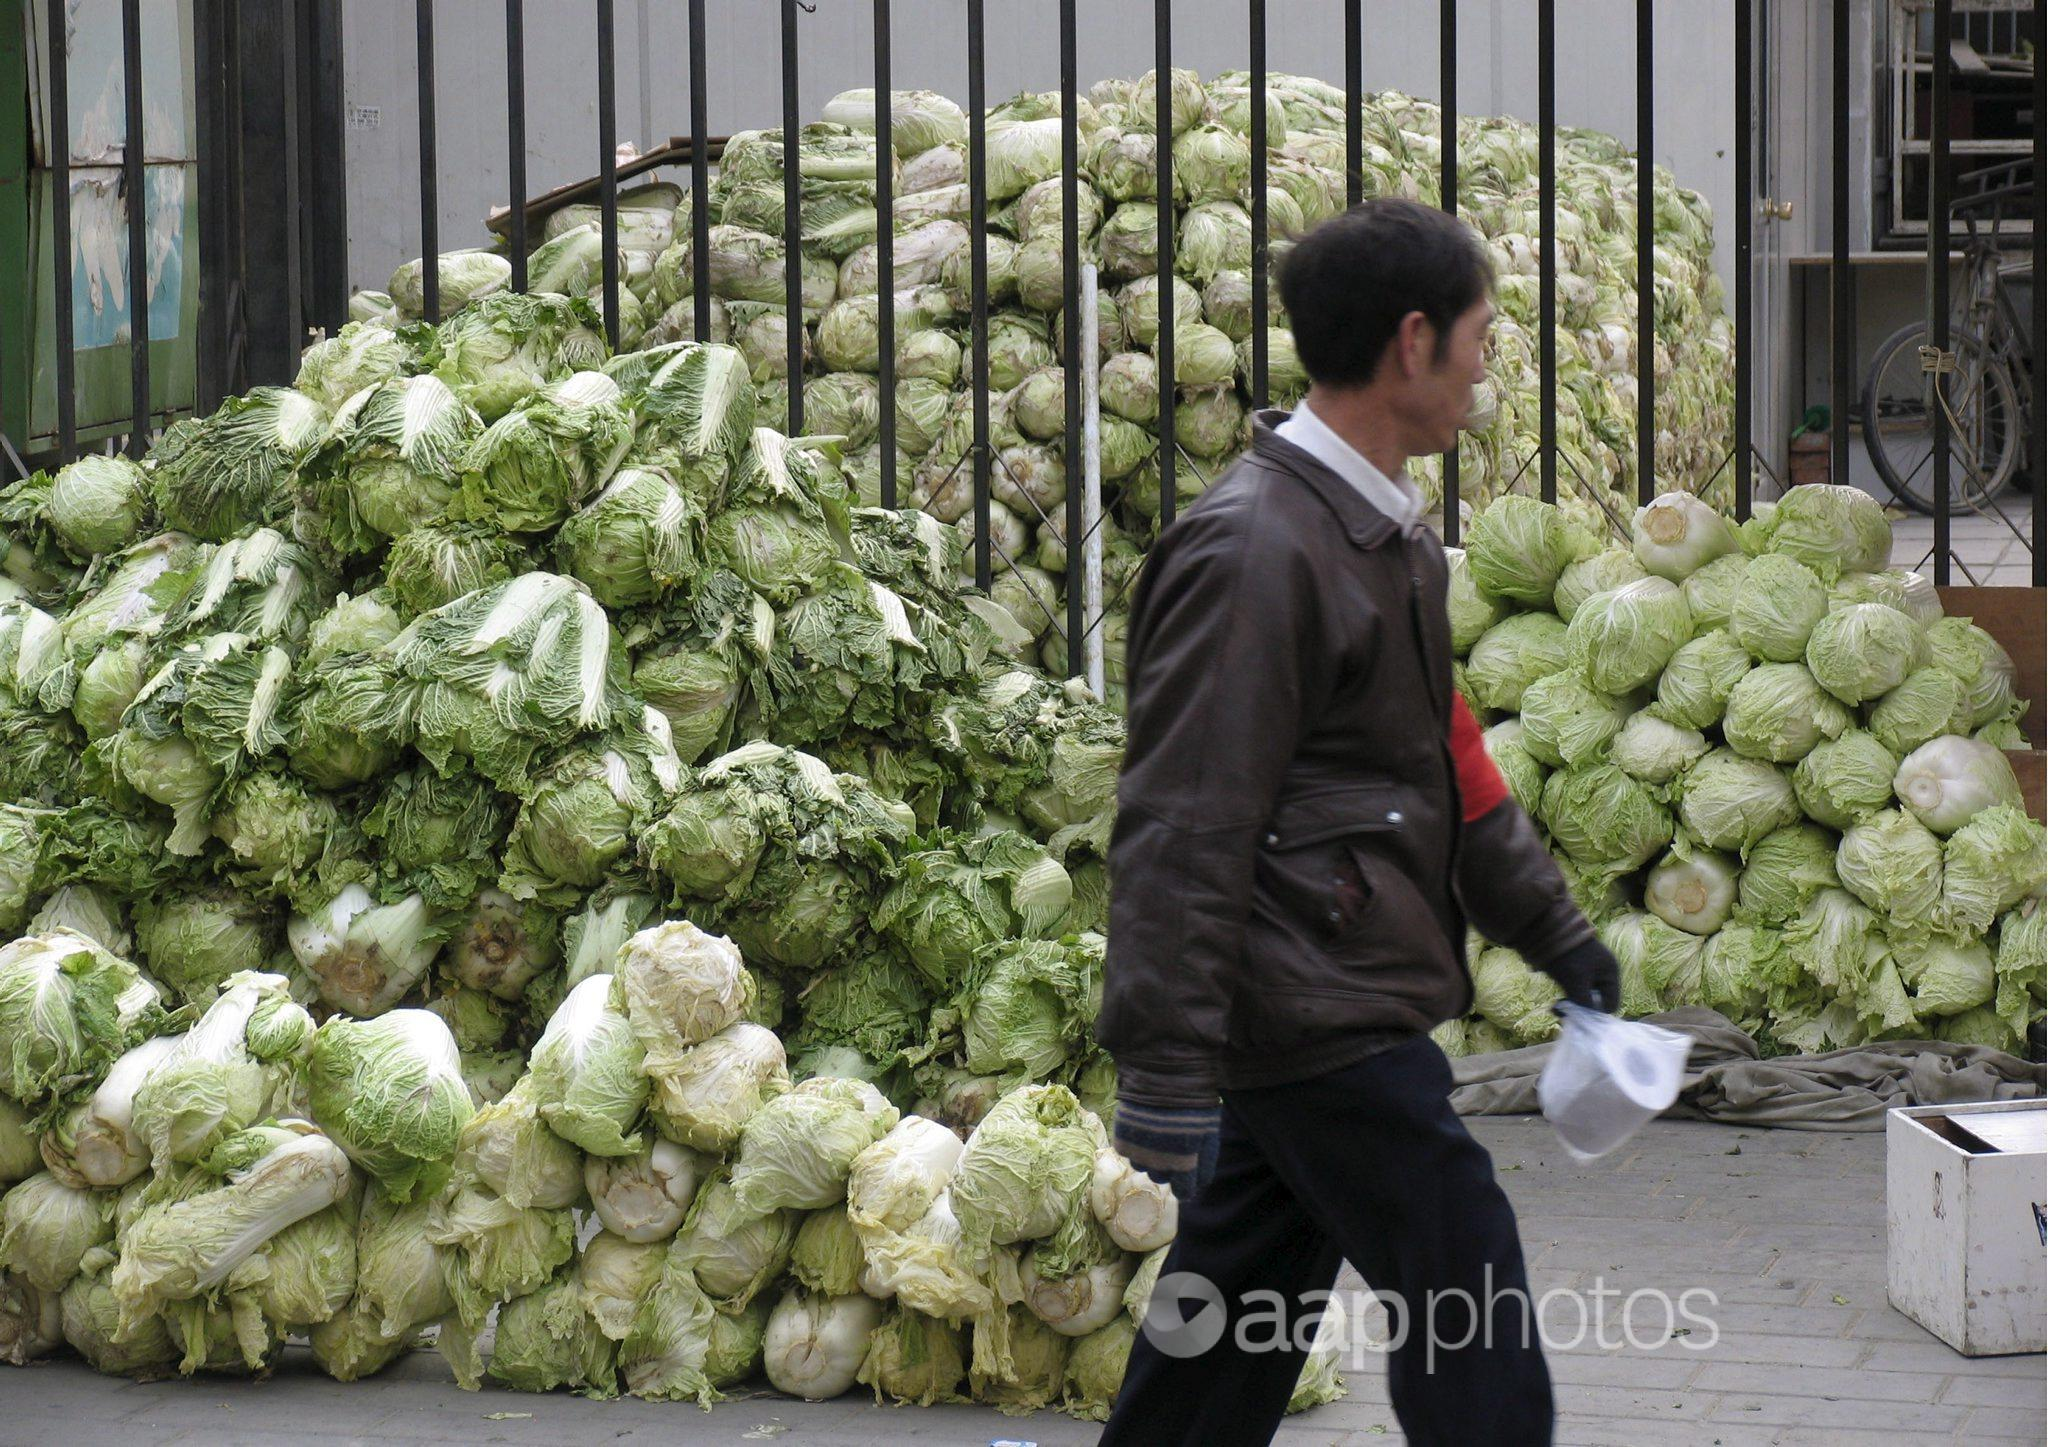 A stack of cabbages in a Beijing residential area.